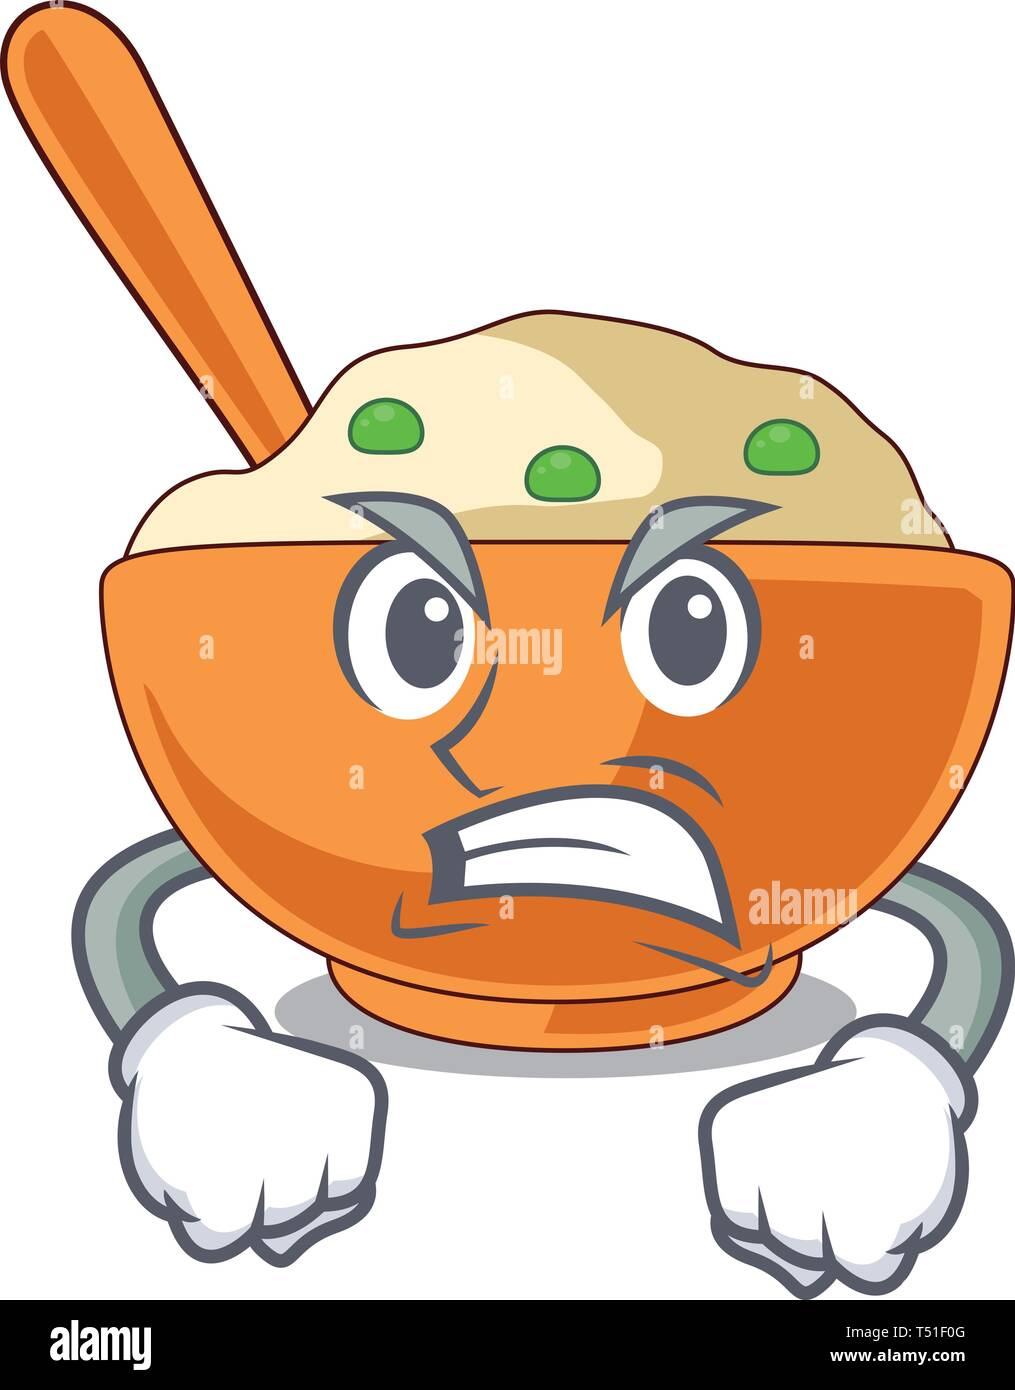 Angry mashed potato in the shape mascot - Stock Image